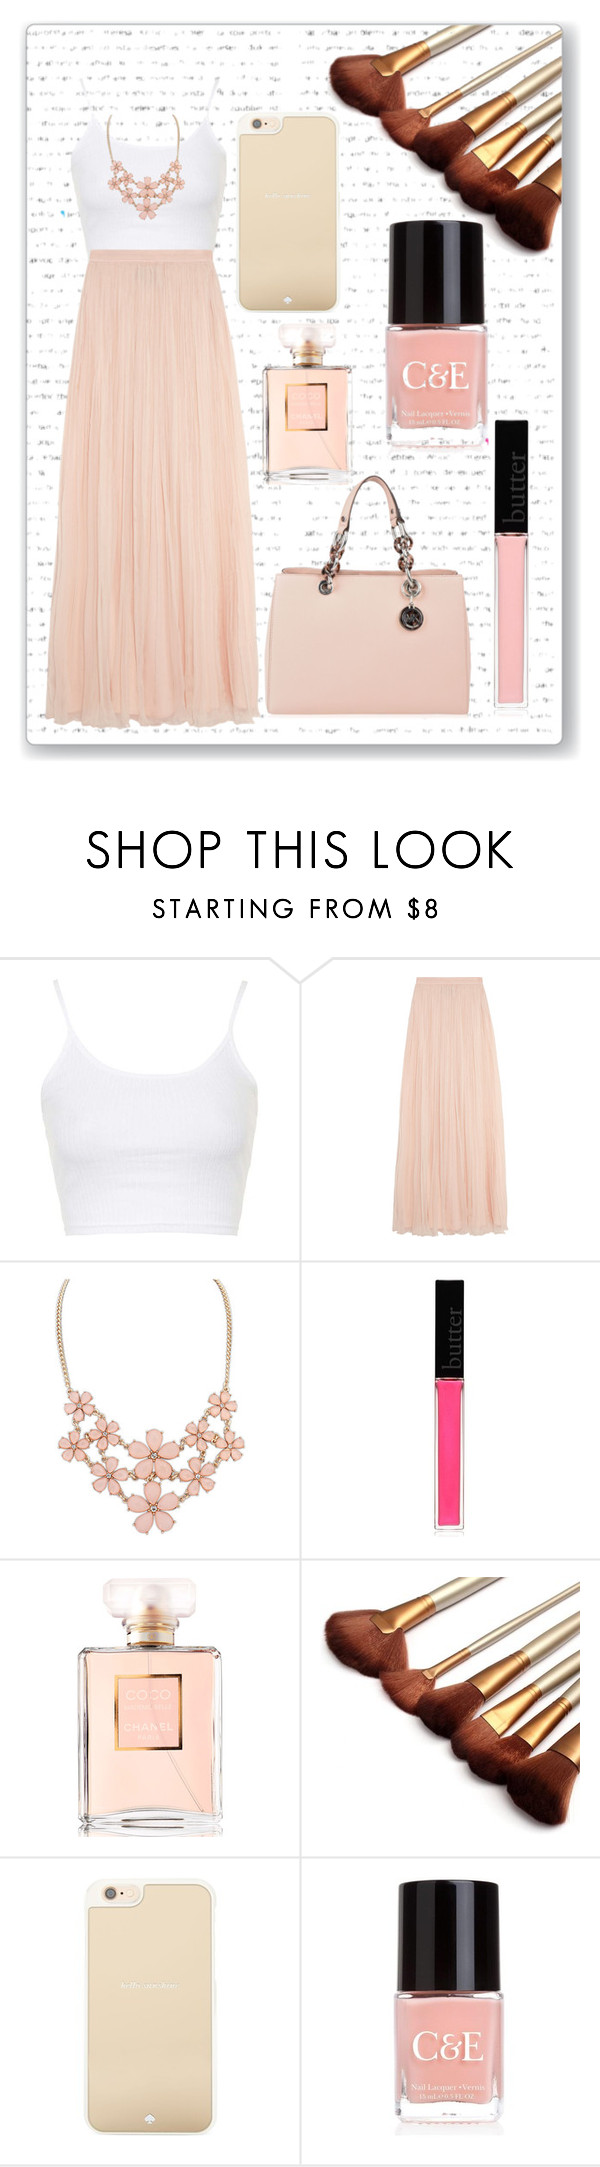 """""""Pretty"""" by pandoraprincess15 ❤ liked on Polyvore featuring Topshop, Needle & Thread, Butter London, Chanel, Kate Spade, Crabtree & Evelyn and MICHAEL Michael Kors"""